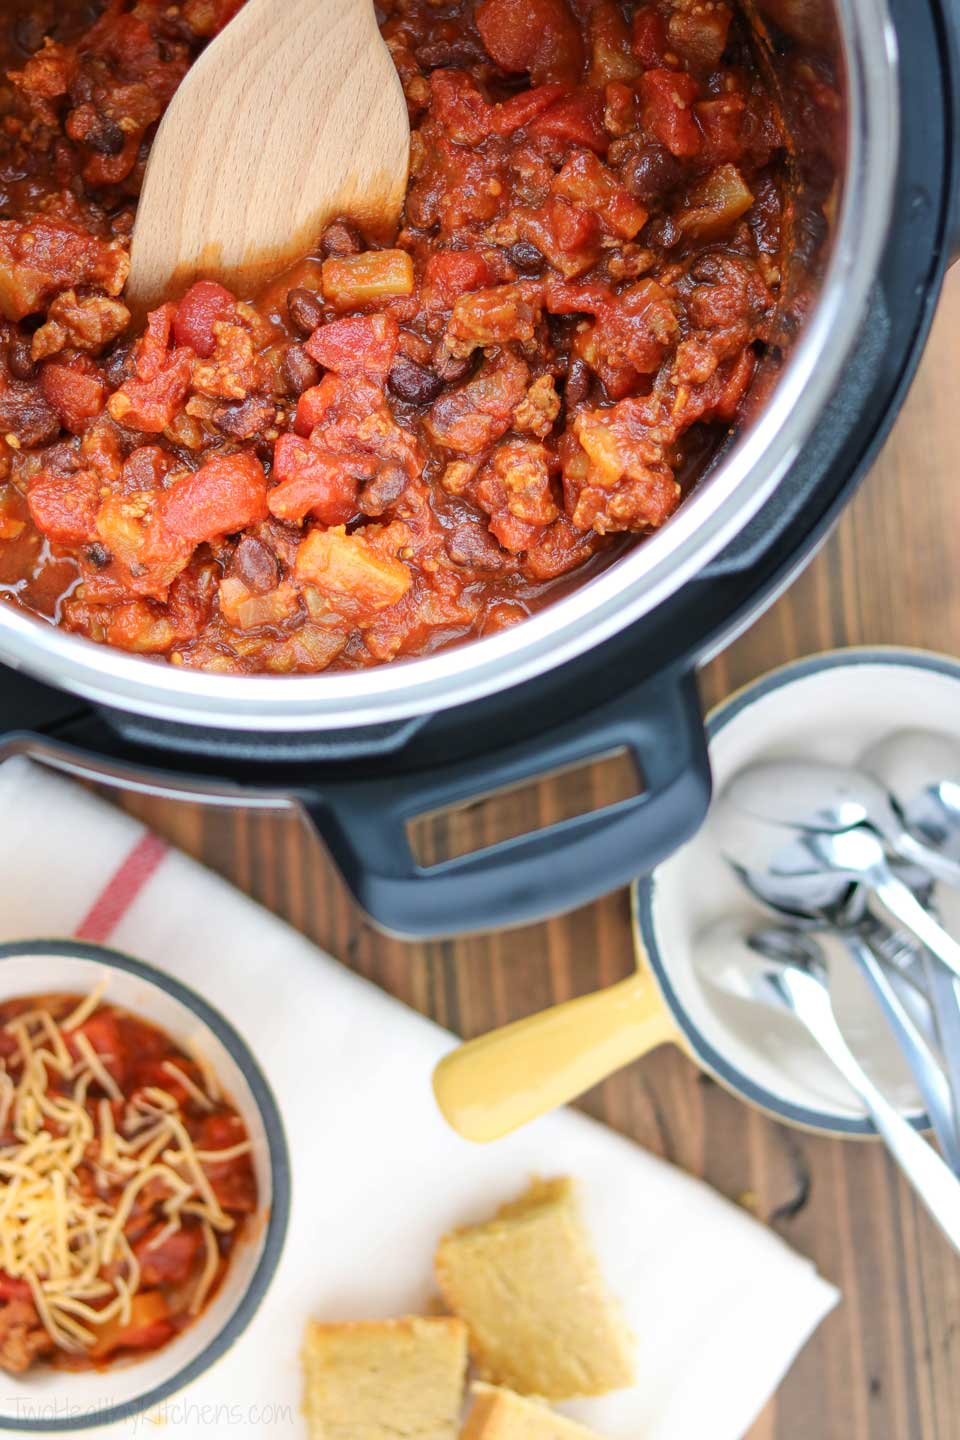 Instant Pots are great for making chili – and also soups and stews! But what else do you do with an Instant Pot? If you're wondering how to use an Instant Pot, and what all it can do … we've got lots of ideas to help you get the most out of your electric pressure cooker, and maybe even to help you decide if you should buy an Instant Pot in the first place! | #InstantPot #pressurecooker #pressurecooking #slowcooker | www.TwoHealthyKitchens.com